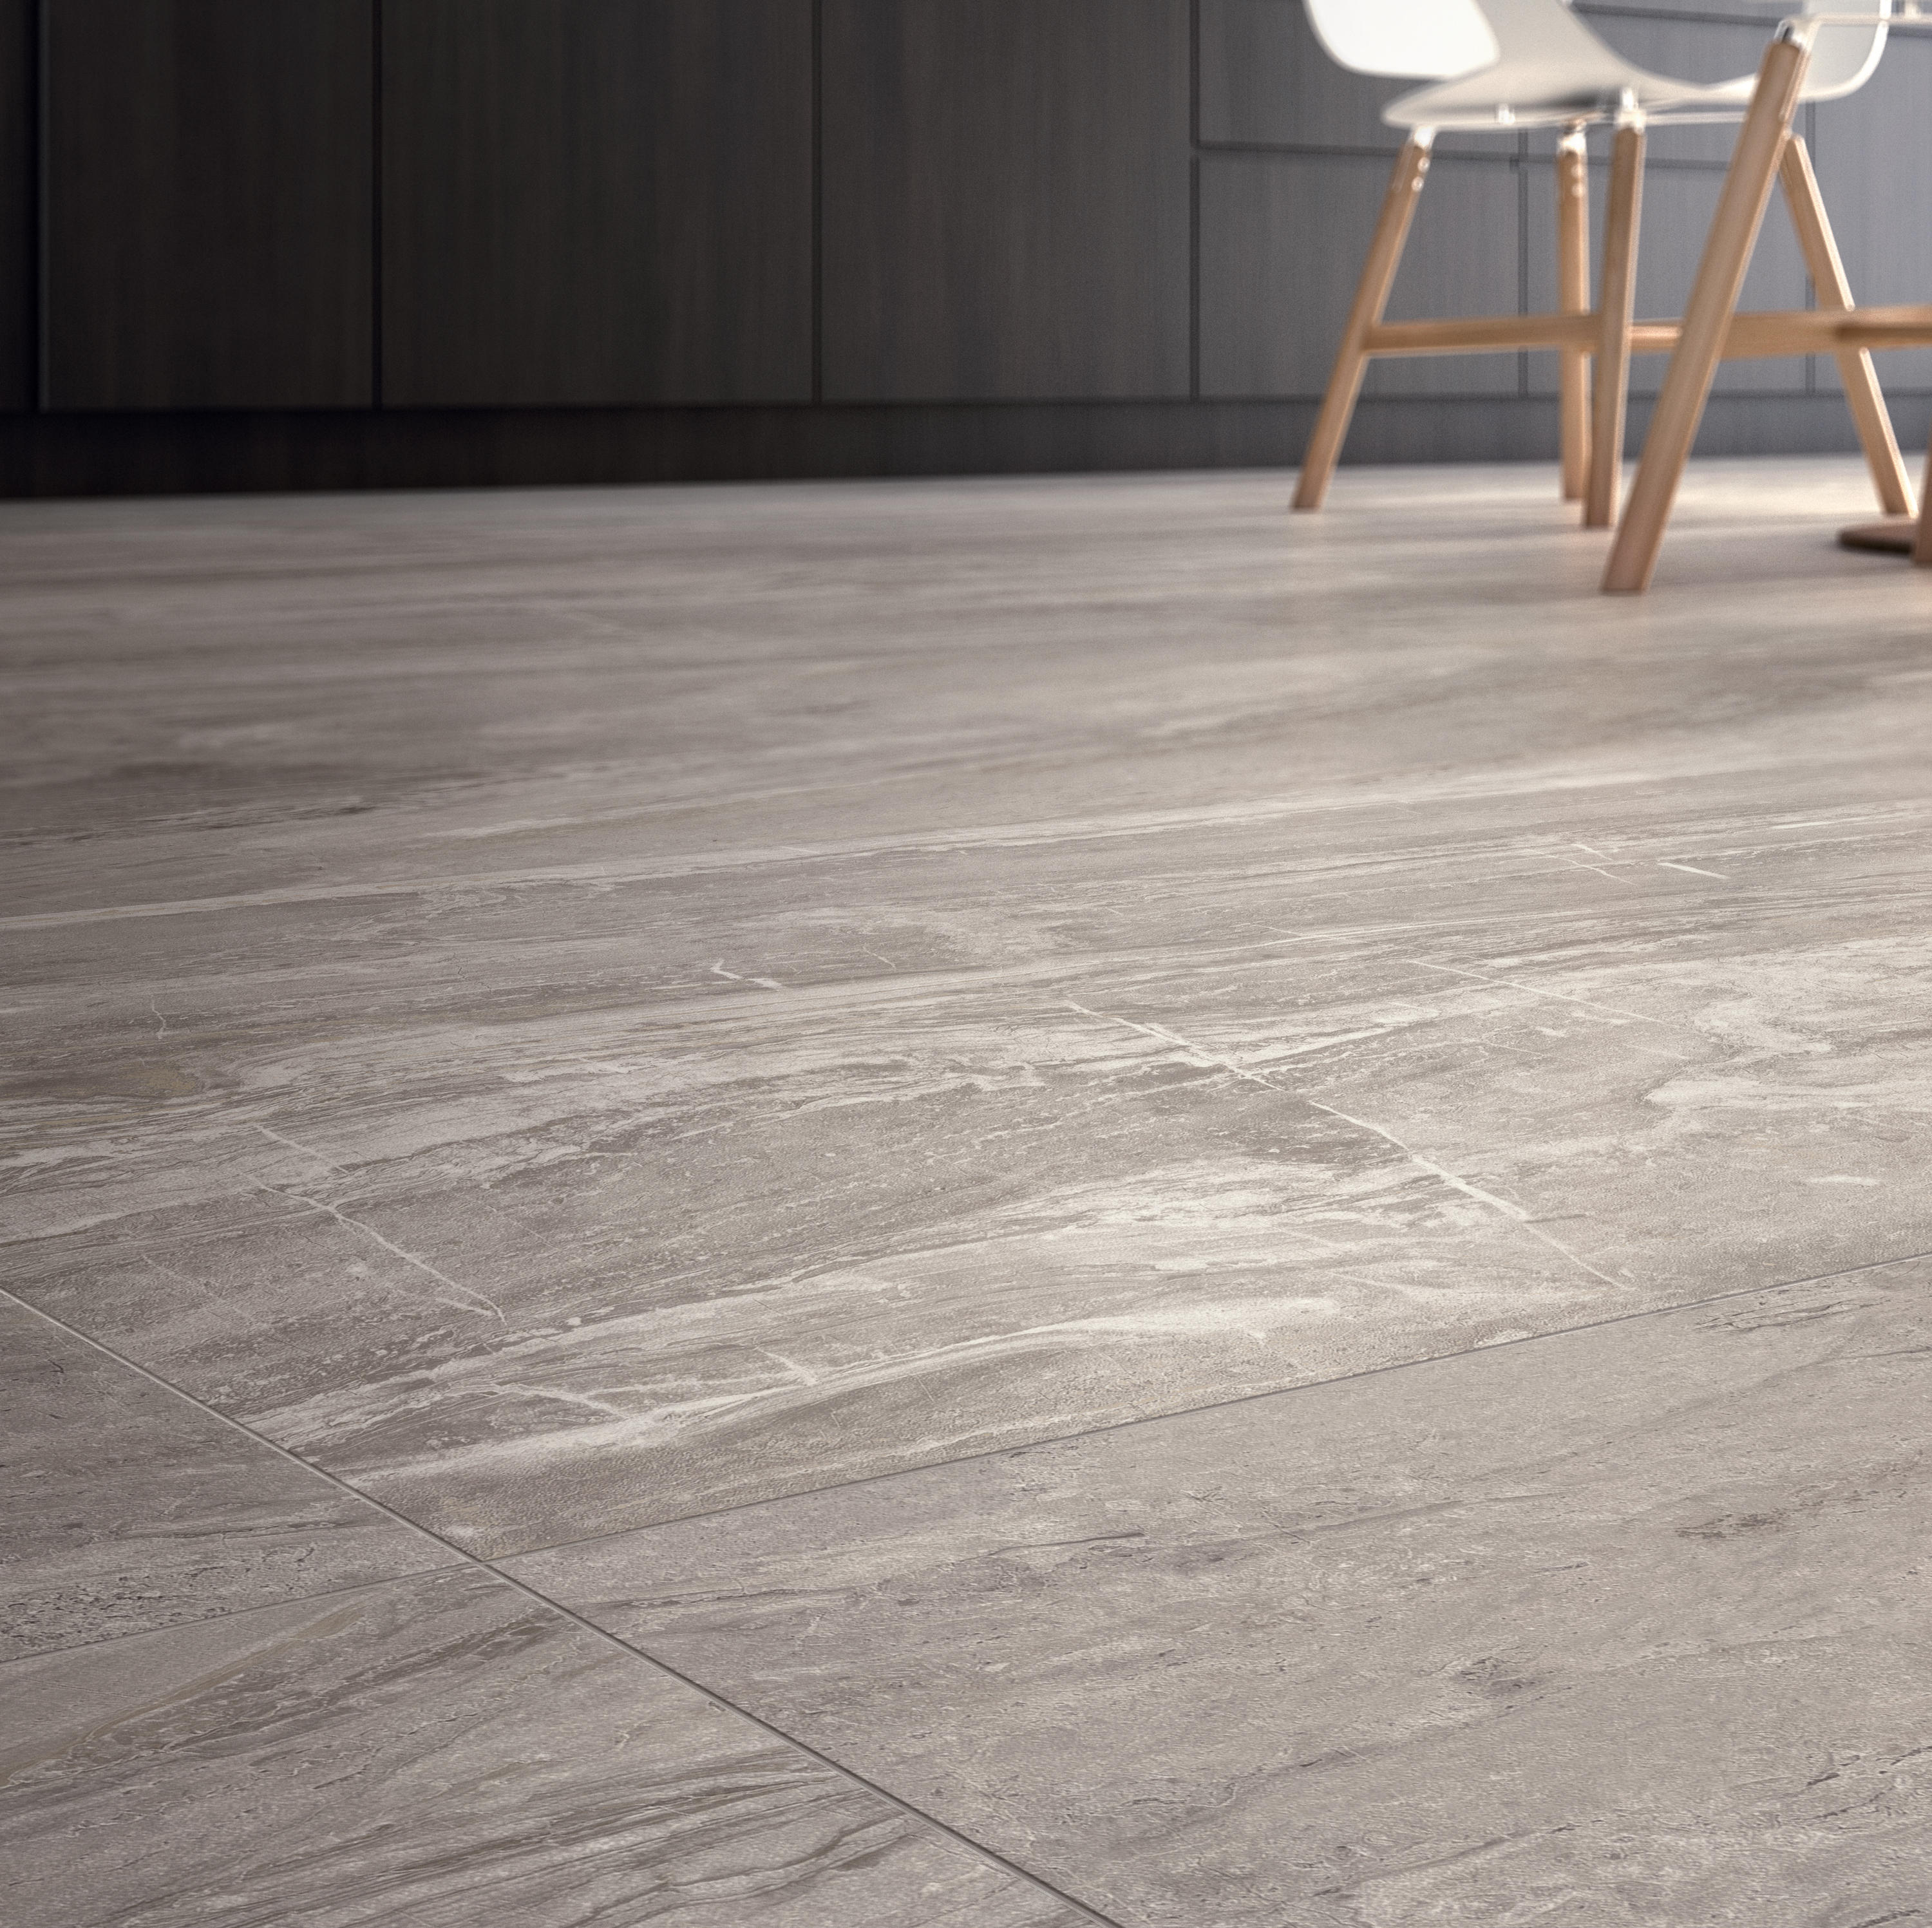 Sensi arabesque silver floor tiles from abk group architonic ambient images dailygadgetfo Image collections